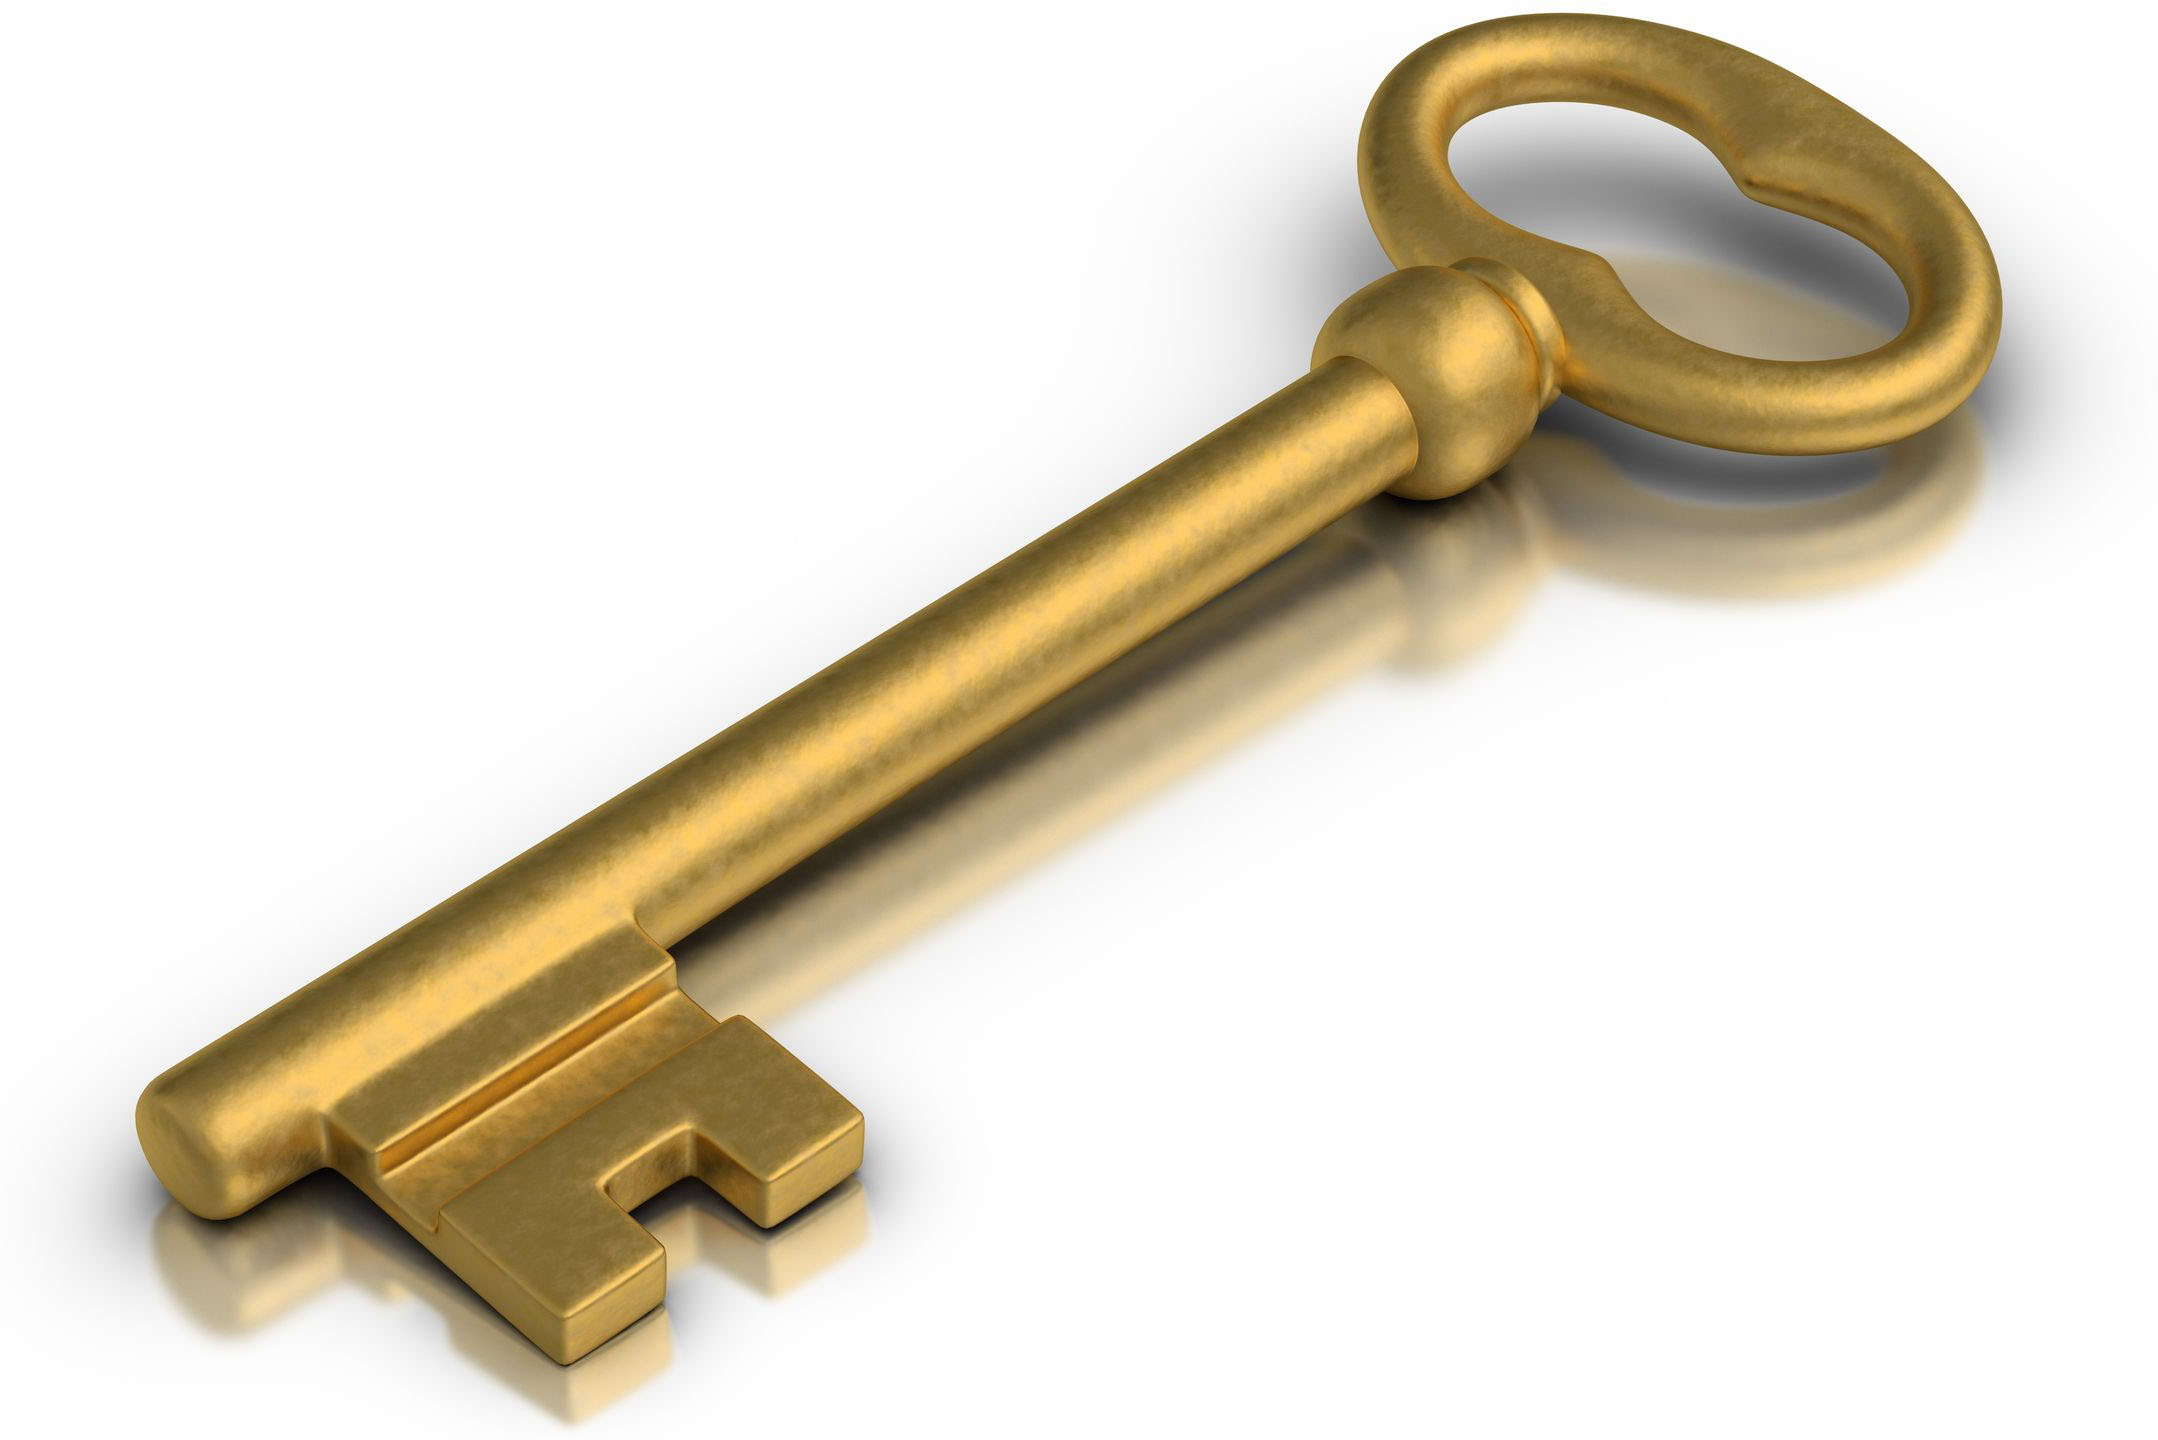 Golden Key - LIBERTY (SECURITY PRIVACY SAFETY) FREE WILL - UNIVERSAL SPENDING AUTHORITY - PRIVATE PROPERTY - FREE LAND - THERE IS NO GOVERNMENT - A GUARANTEED INCOME - NOW YOU OWN YOUR HOME AND LAND - NOW YOU HAVE AN INCOME